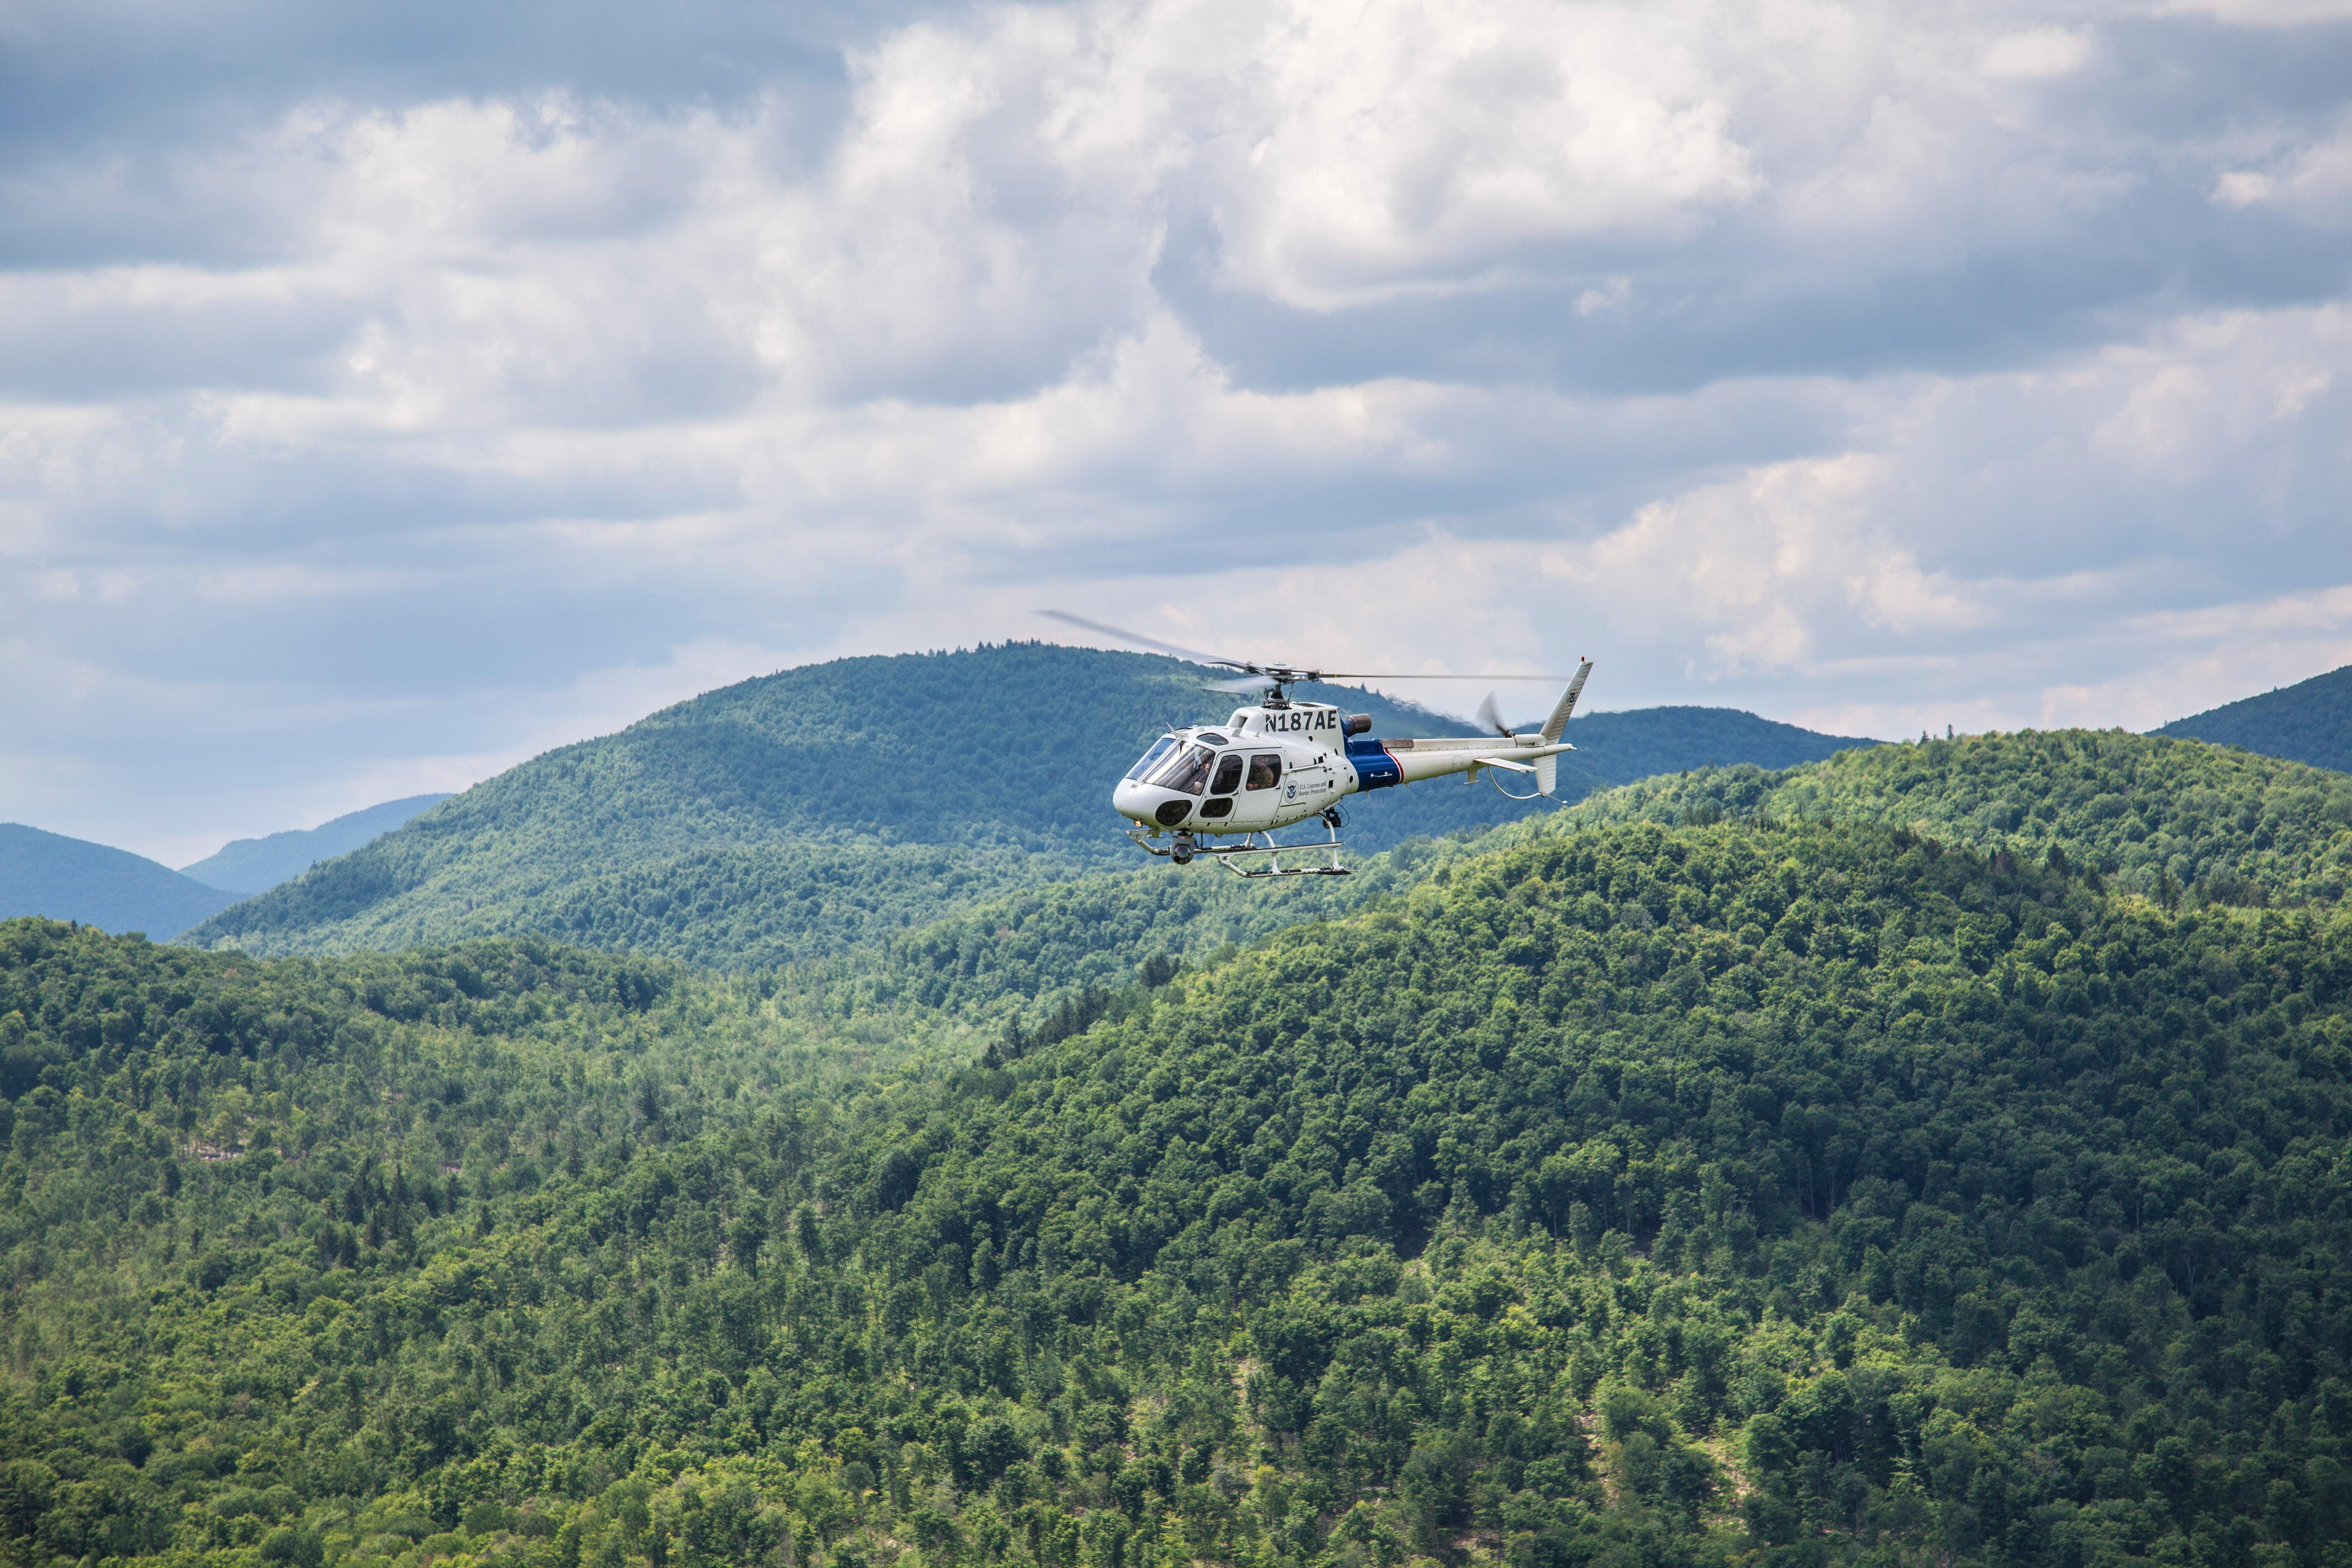 "<font face=""Calibri"" size=""3"">An AS350 crew assists in the hunt for escaped prisoners Richard Matt and David Sweat in upstate in NY.</font>"